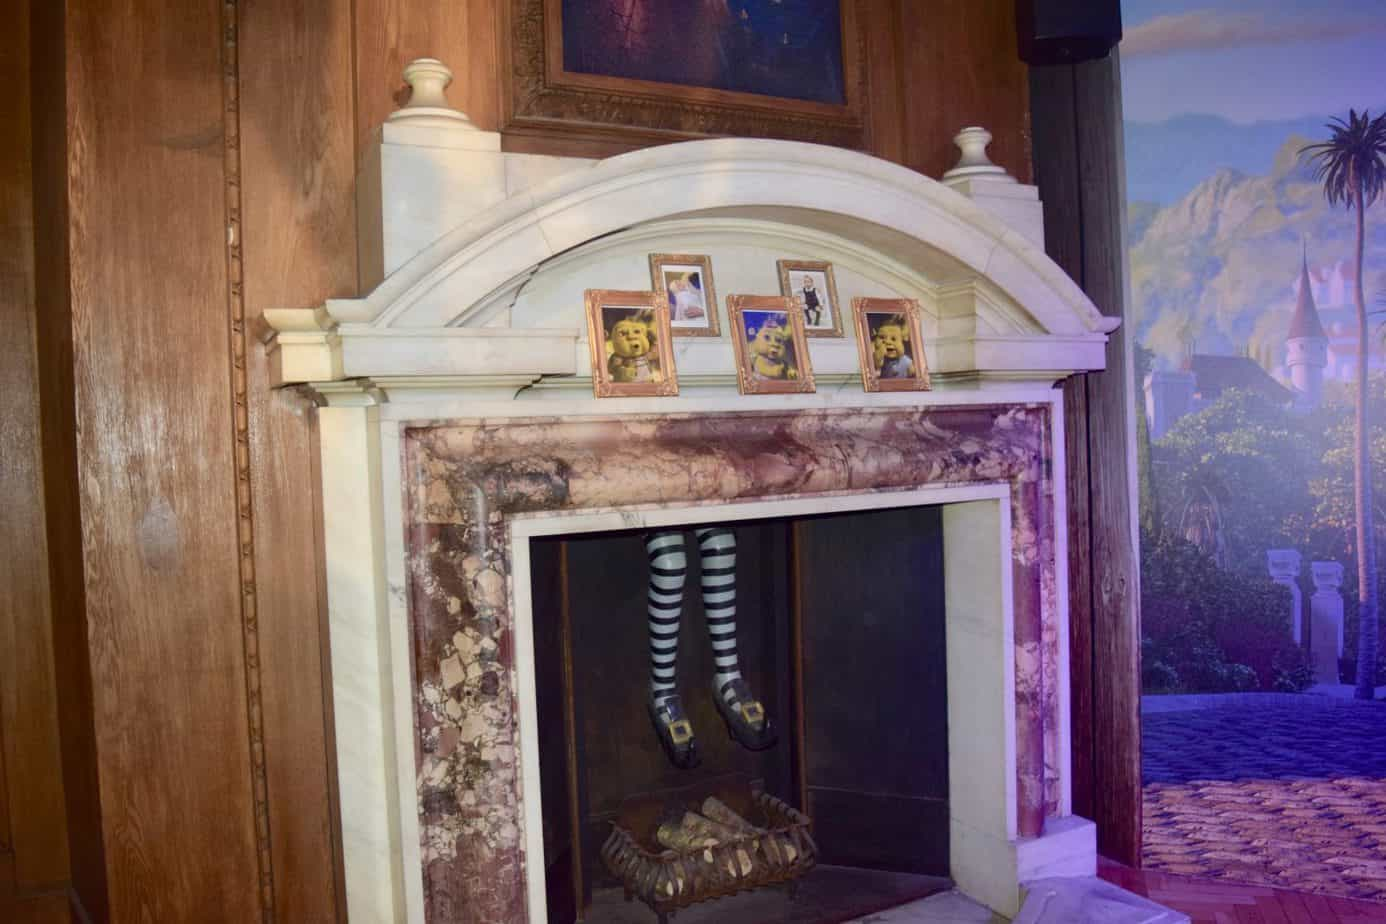 A fireplace with legs coming down from the chimney at Shrek's Adventure